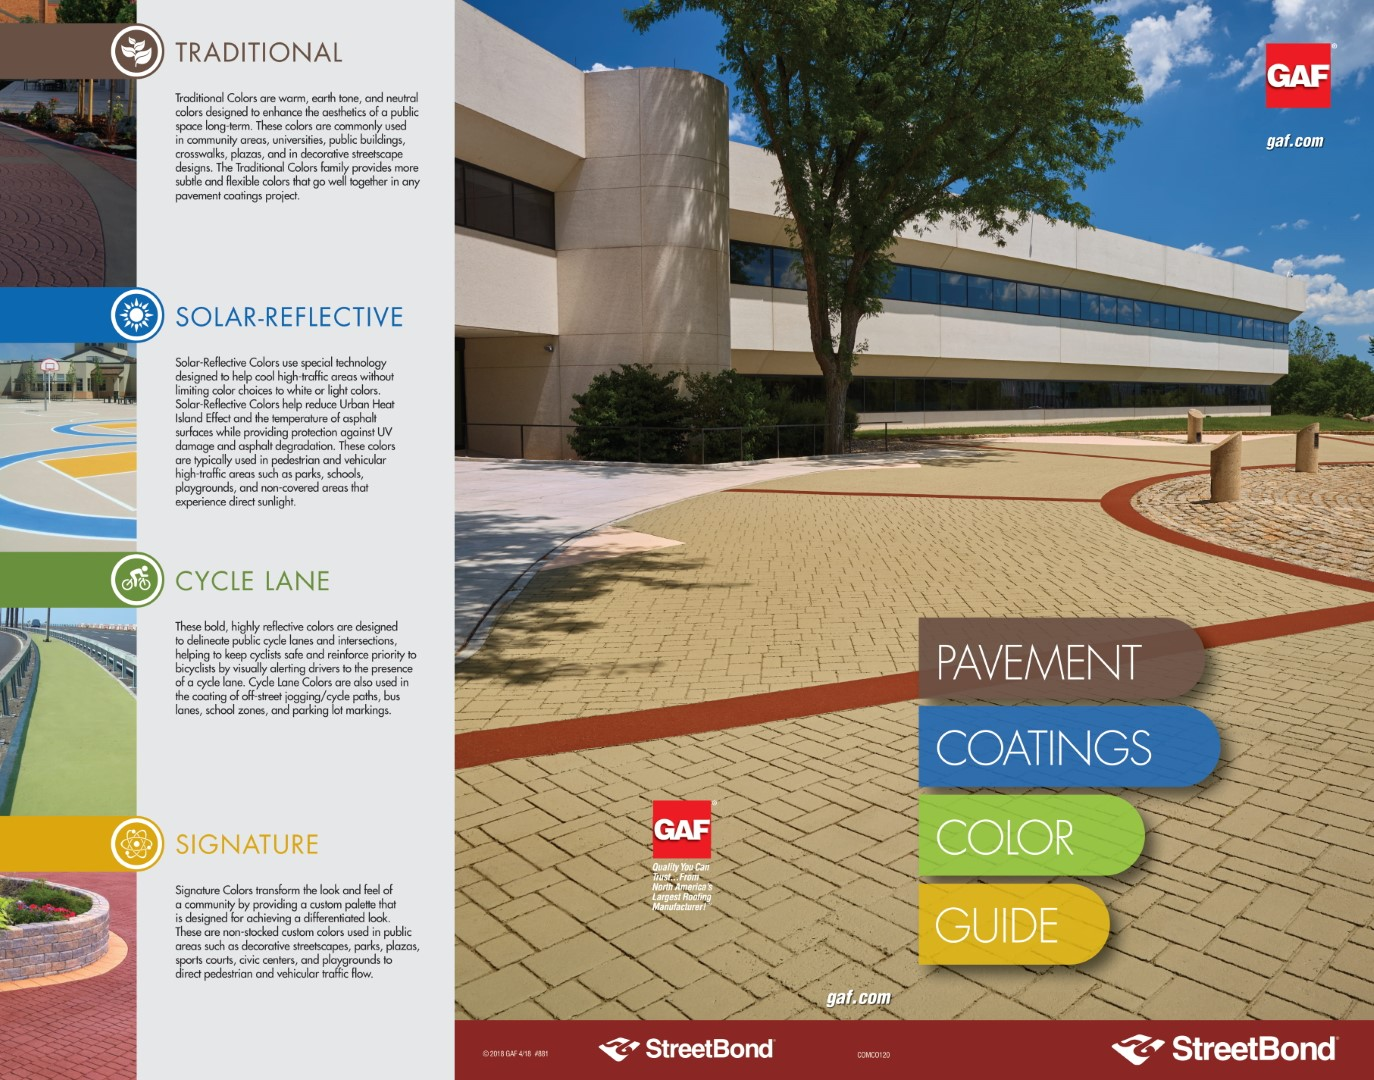 StreetBond_Pavement_Coatings_Color_Guide-1